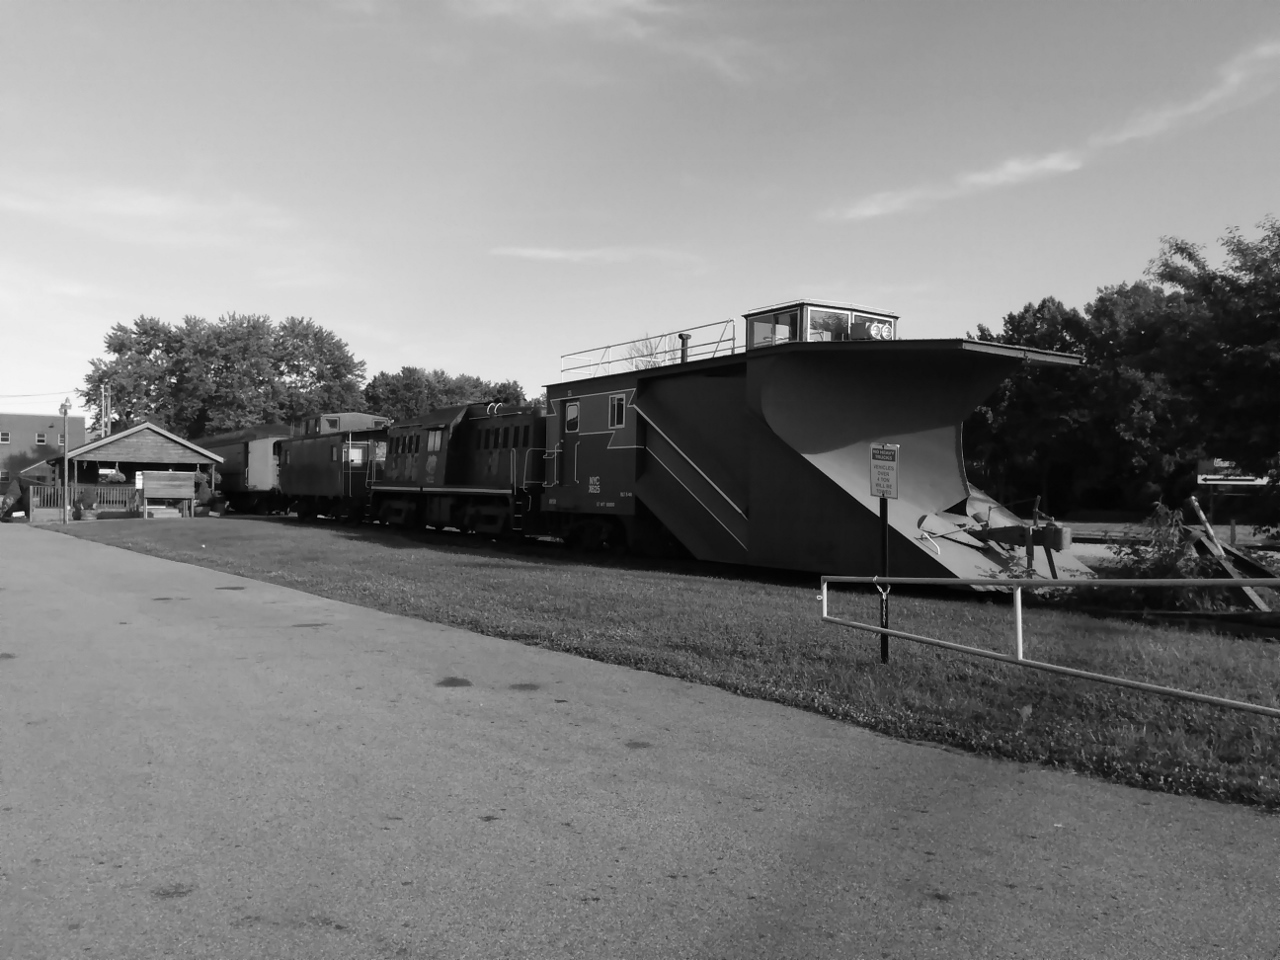 Hocking Valley Scenic Railway - BW 6-14-2018 6-41-46 PM